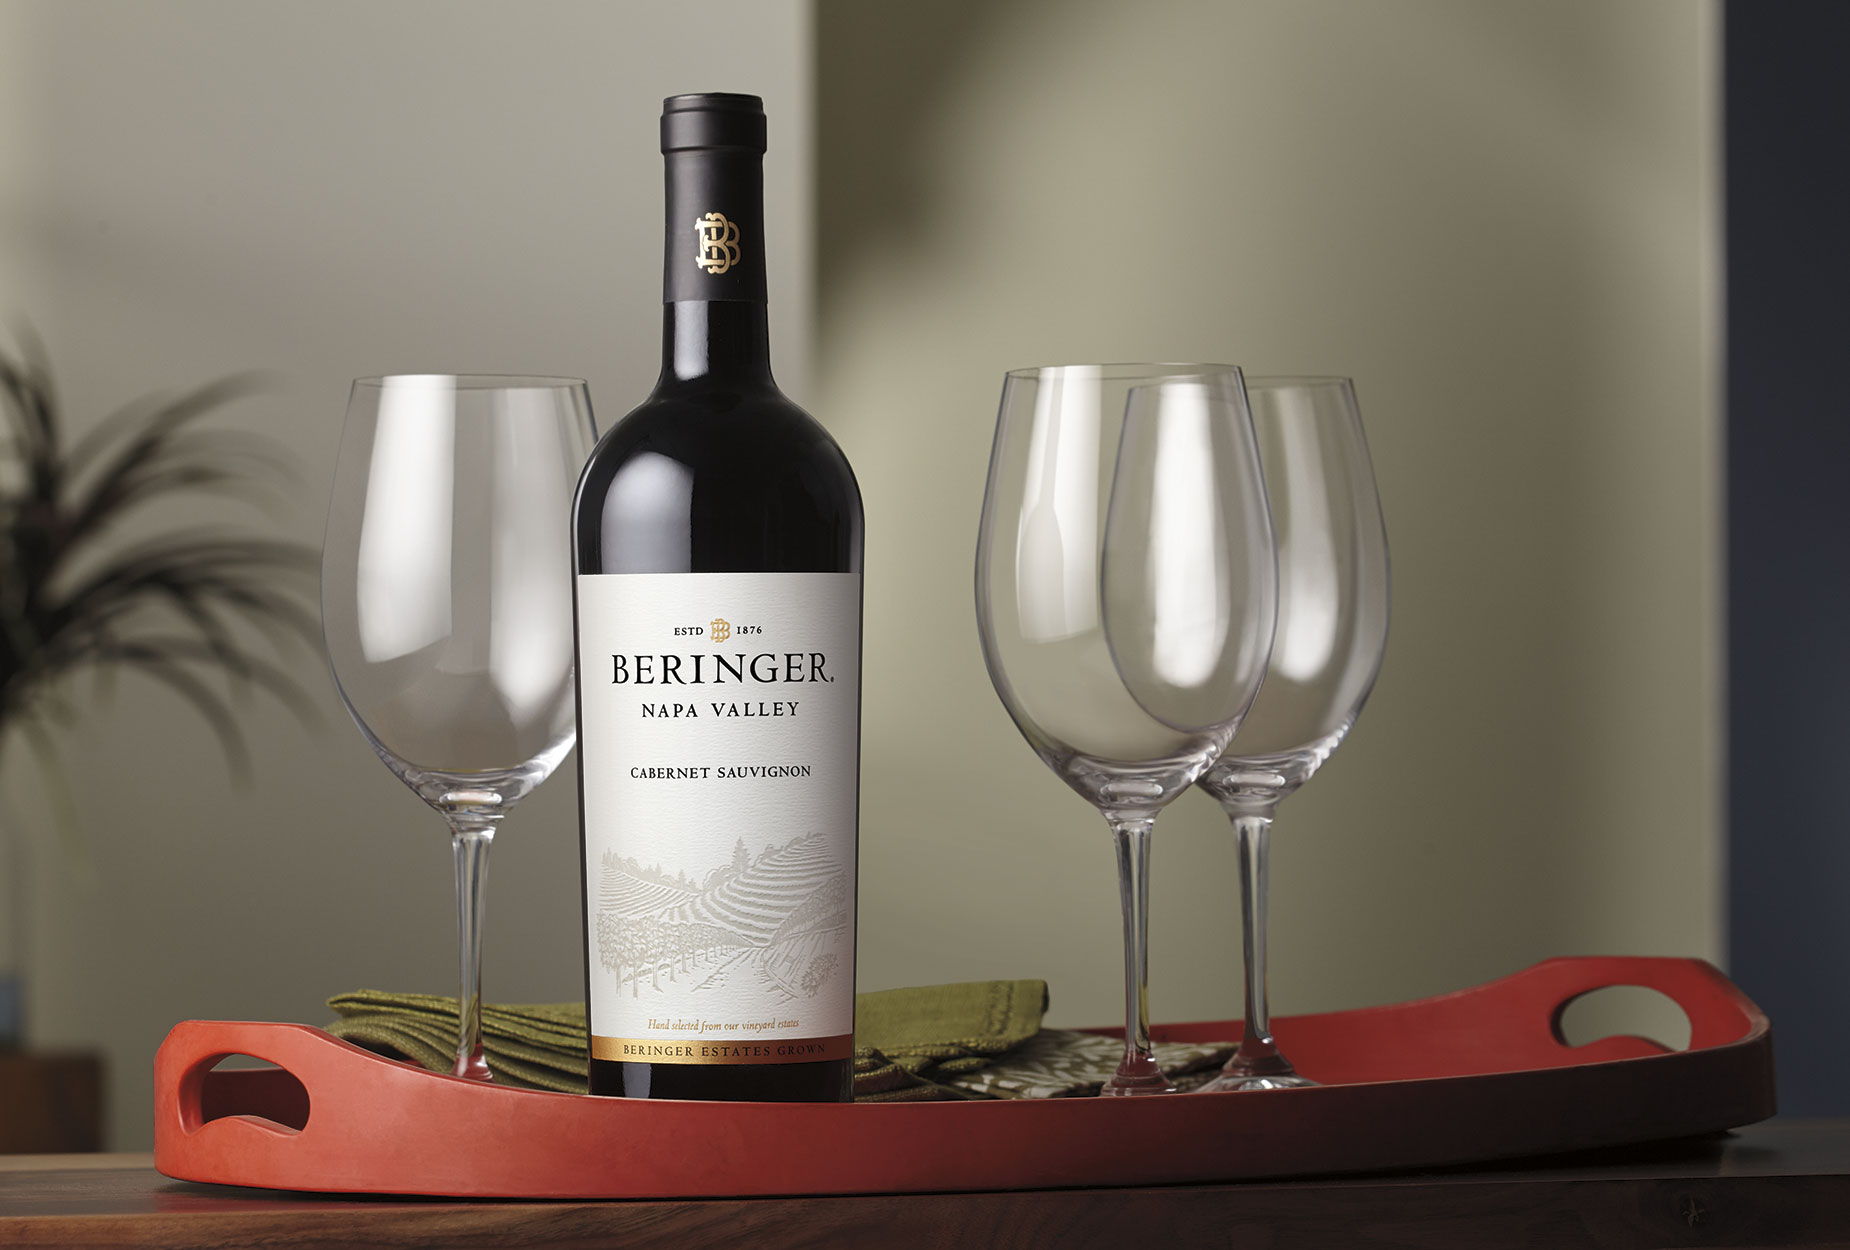 Beringer Napa Valley Cab | Wine Photographer, Marshall Gordon